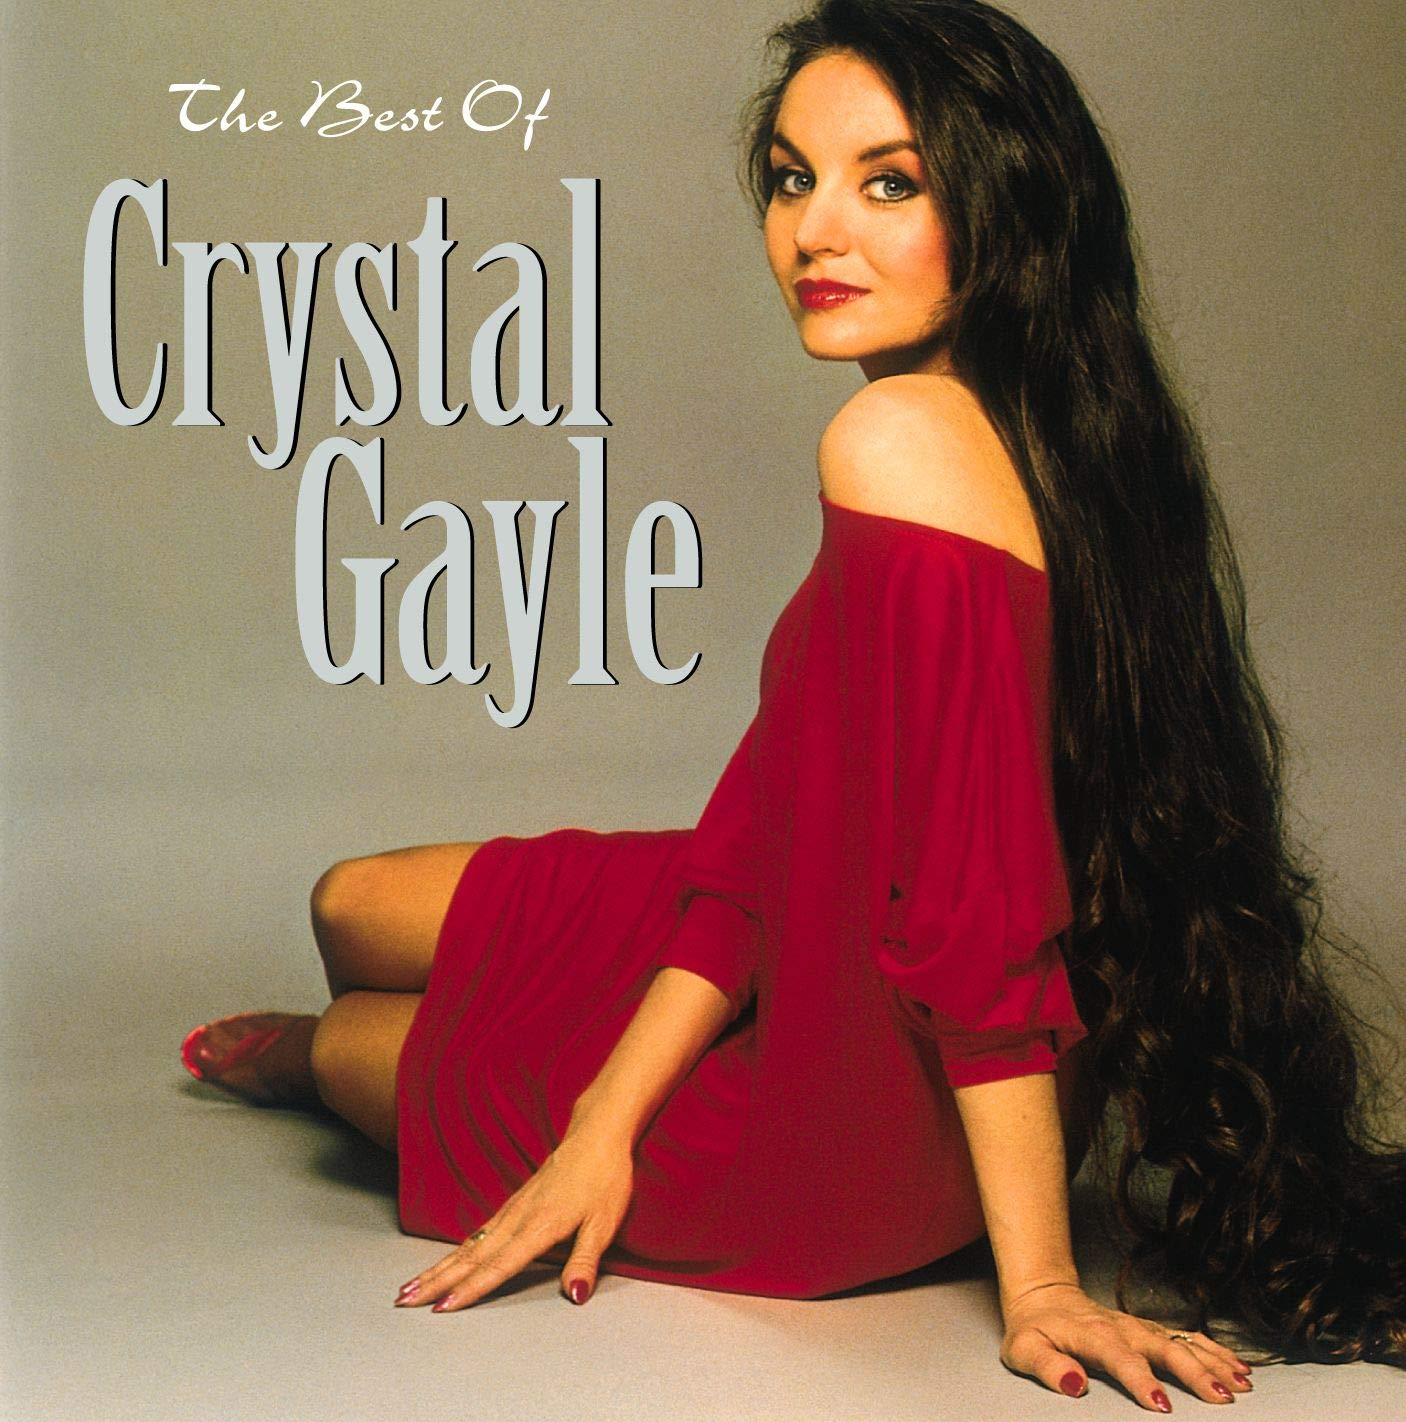 The Best of Crystal Gayle album cover